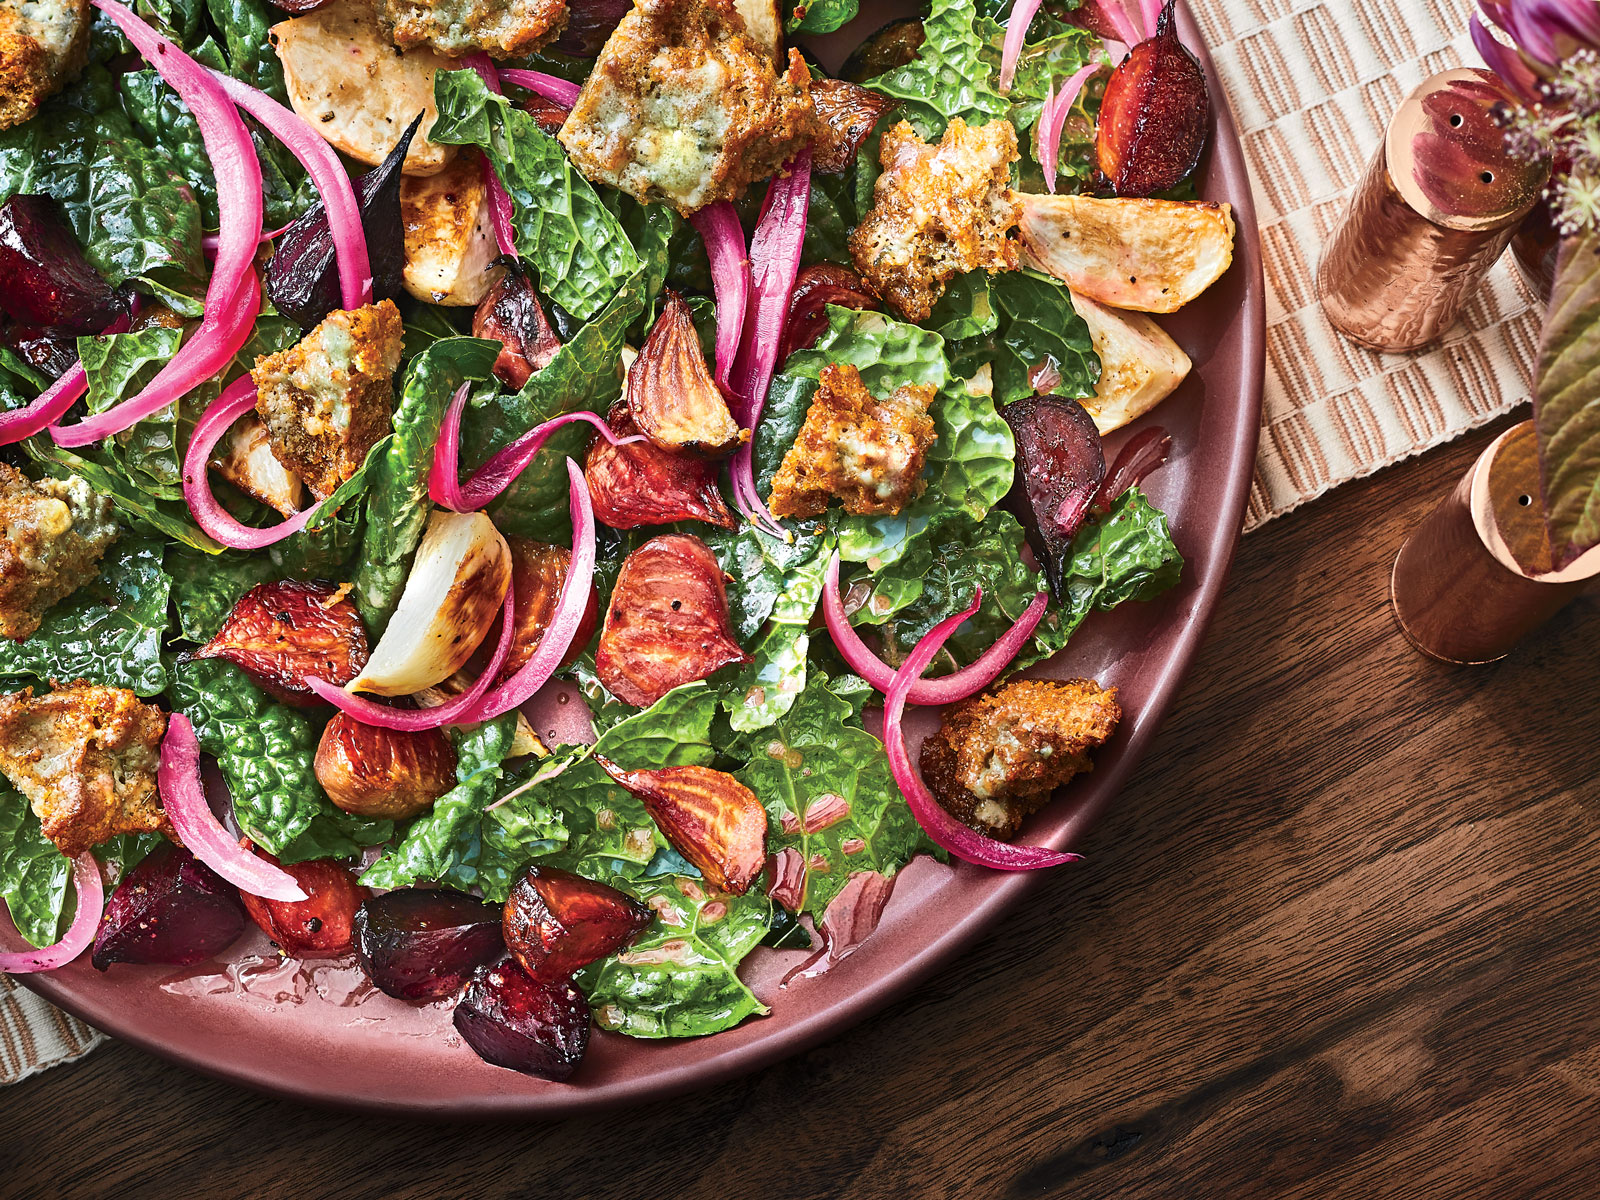 Tuscan Kale Salad with Gorgonzola Croutons Recipe